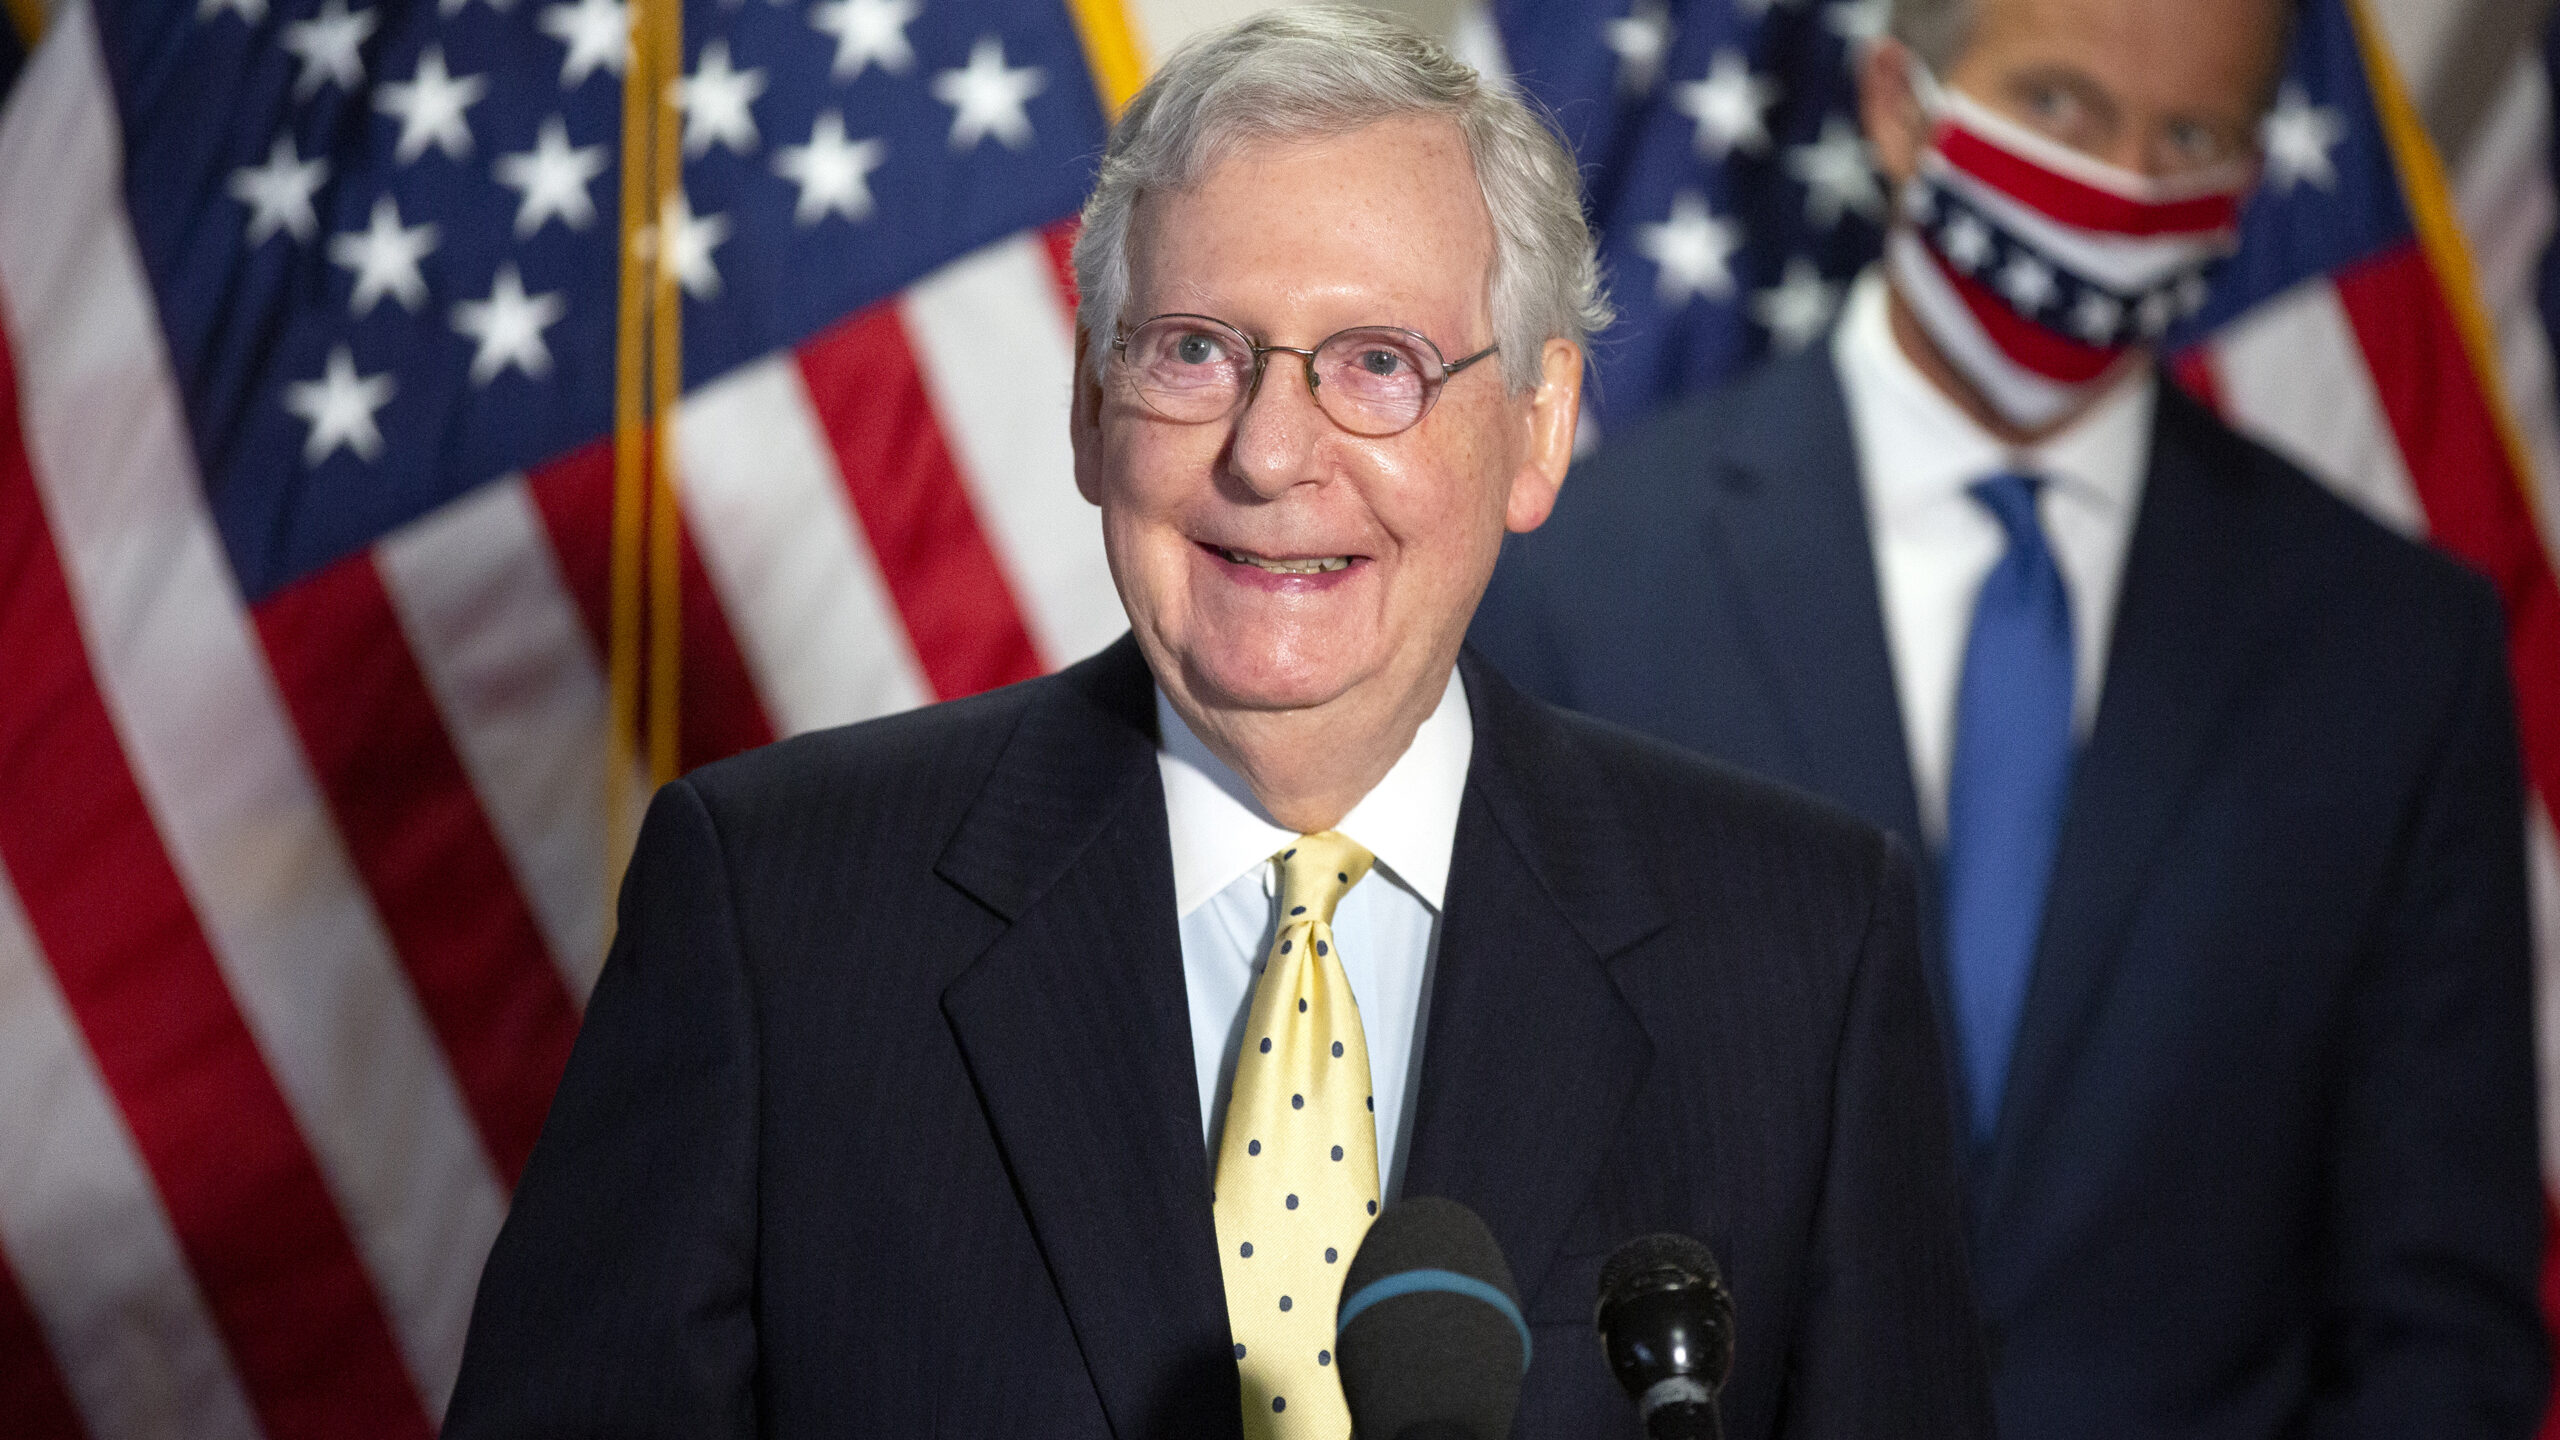 McConnell Blocks Initial $2,000 Stimulus Check Bill: Democrats 'Quietly Changed' What Trump Wanted To Give Money To Their Rich Friends